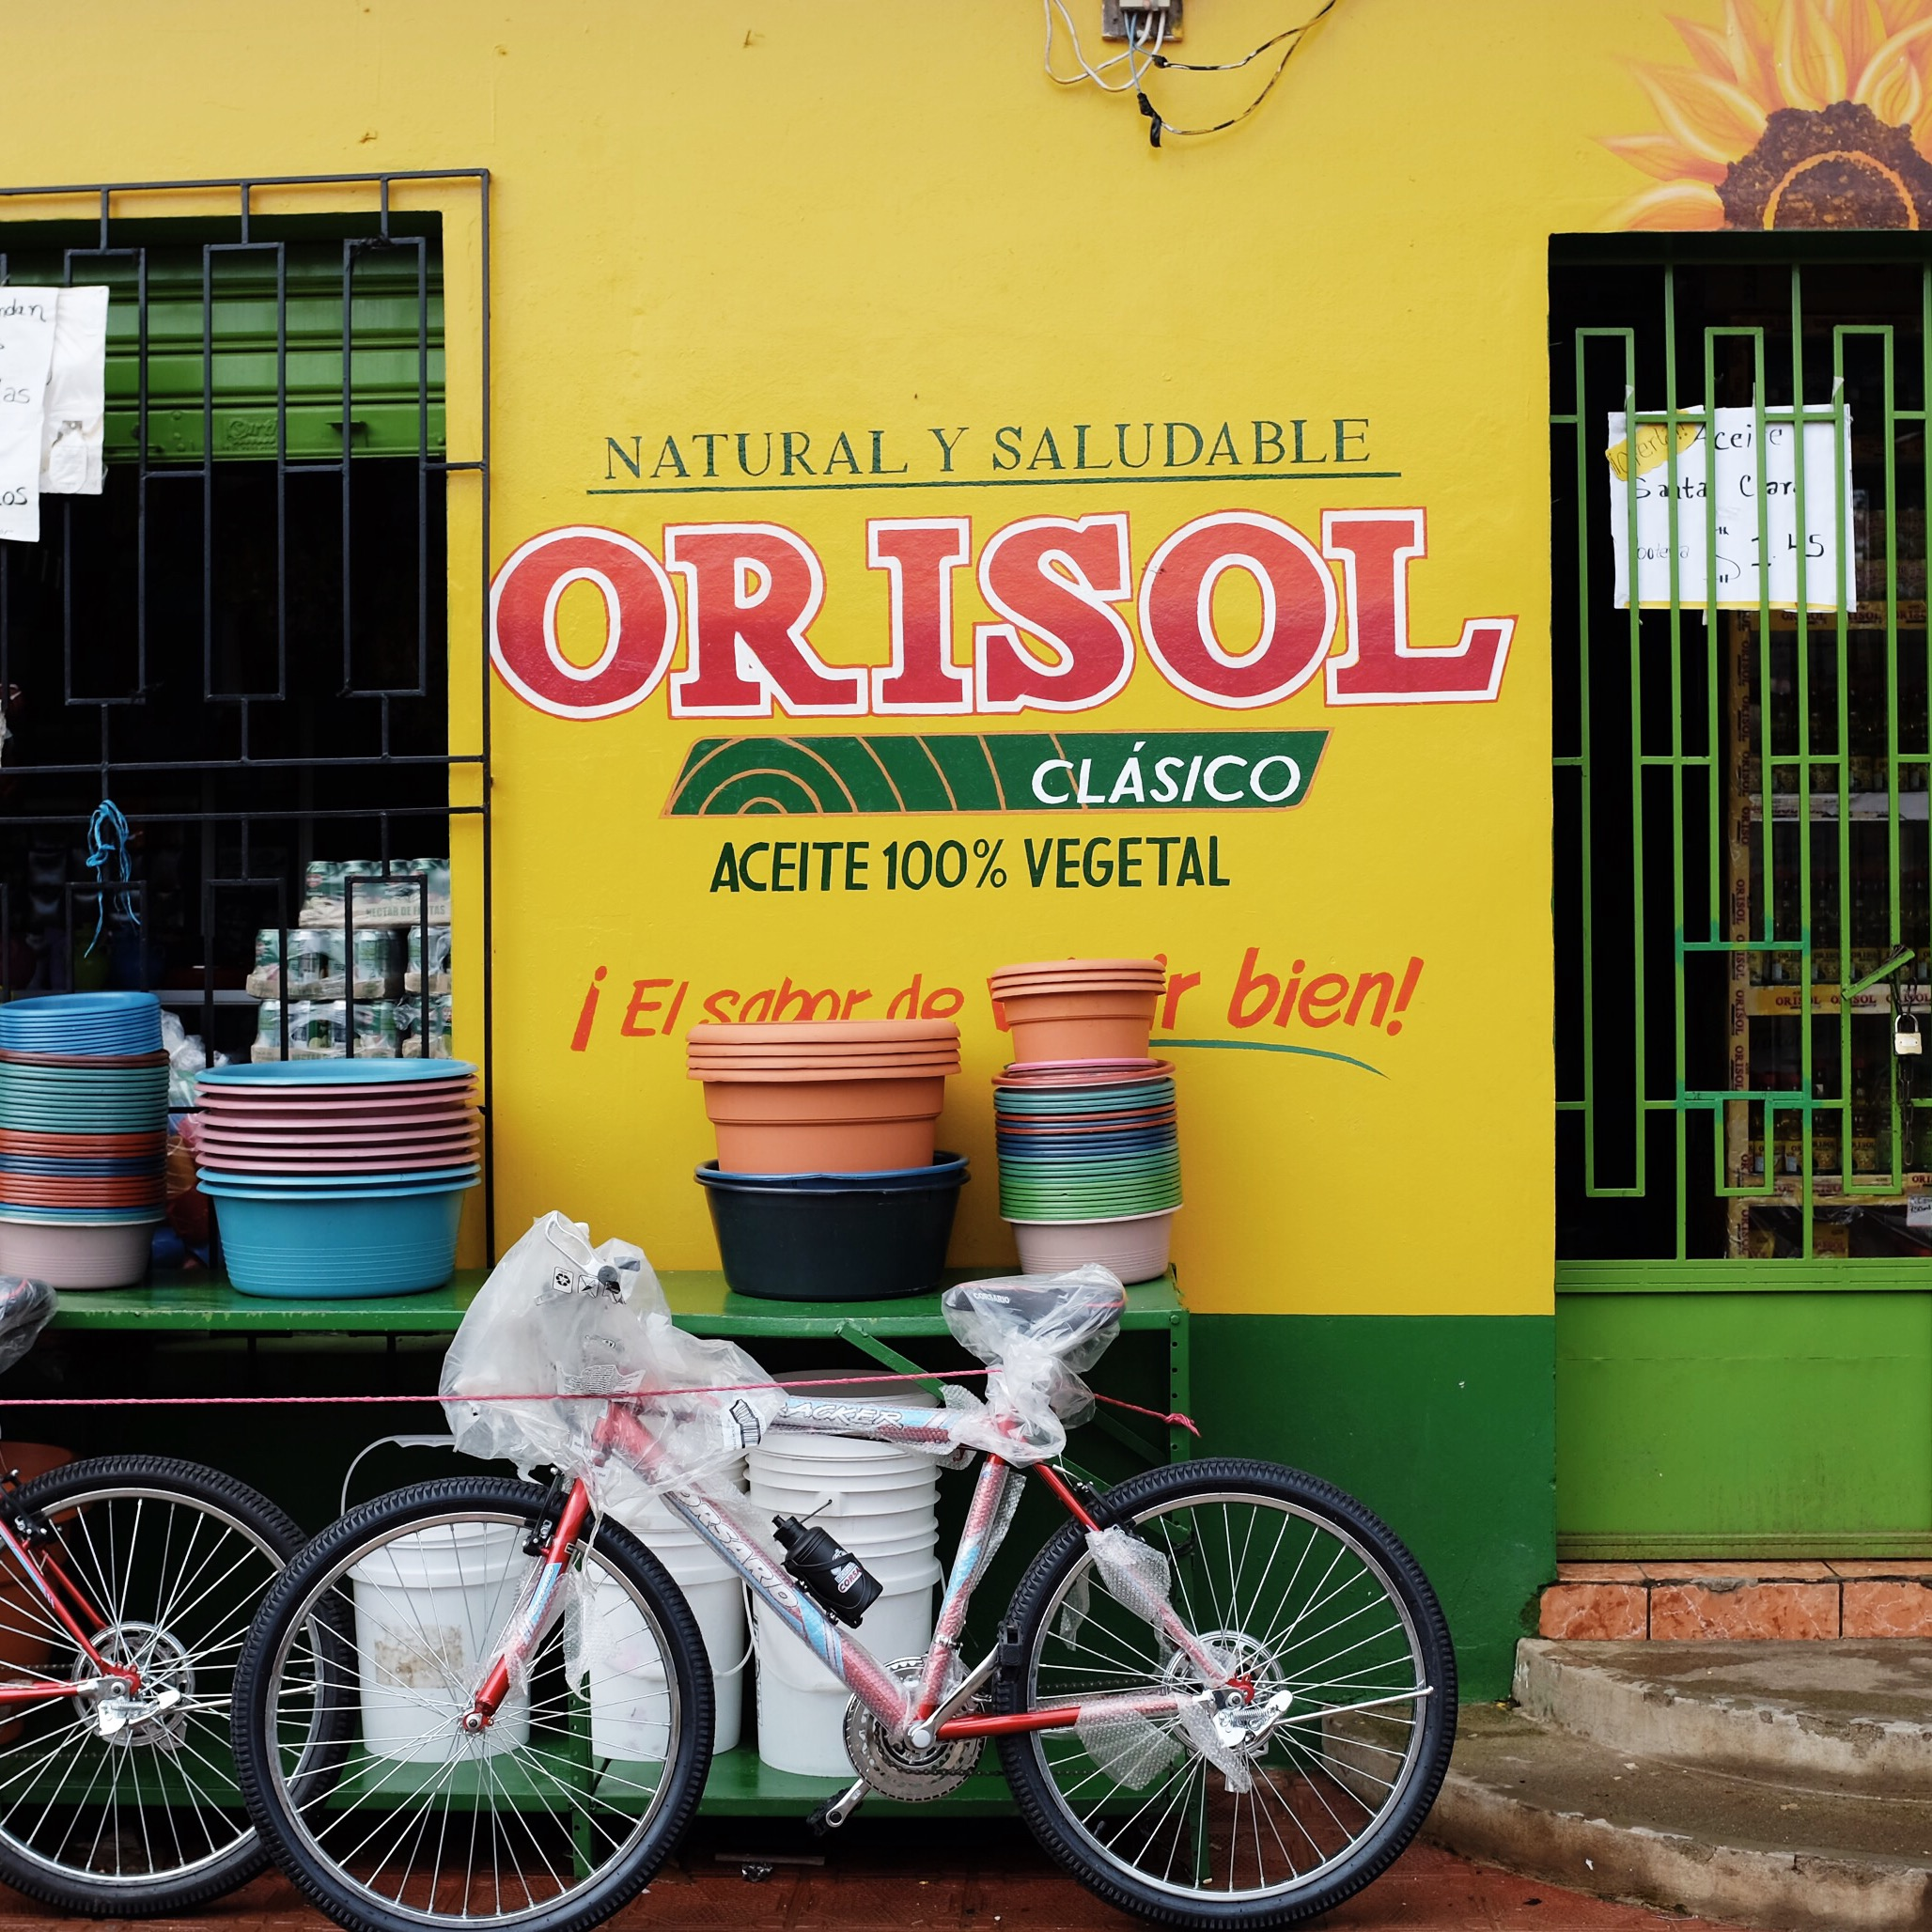 A colorful vignette spotted off the Pan-American Highway